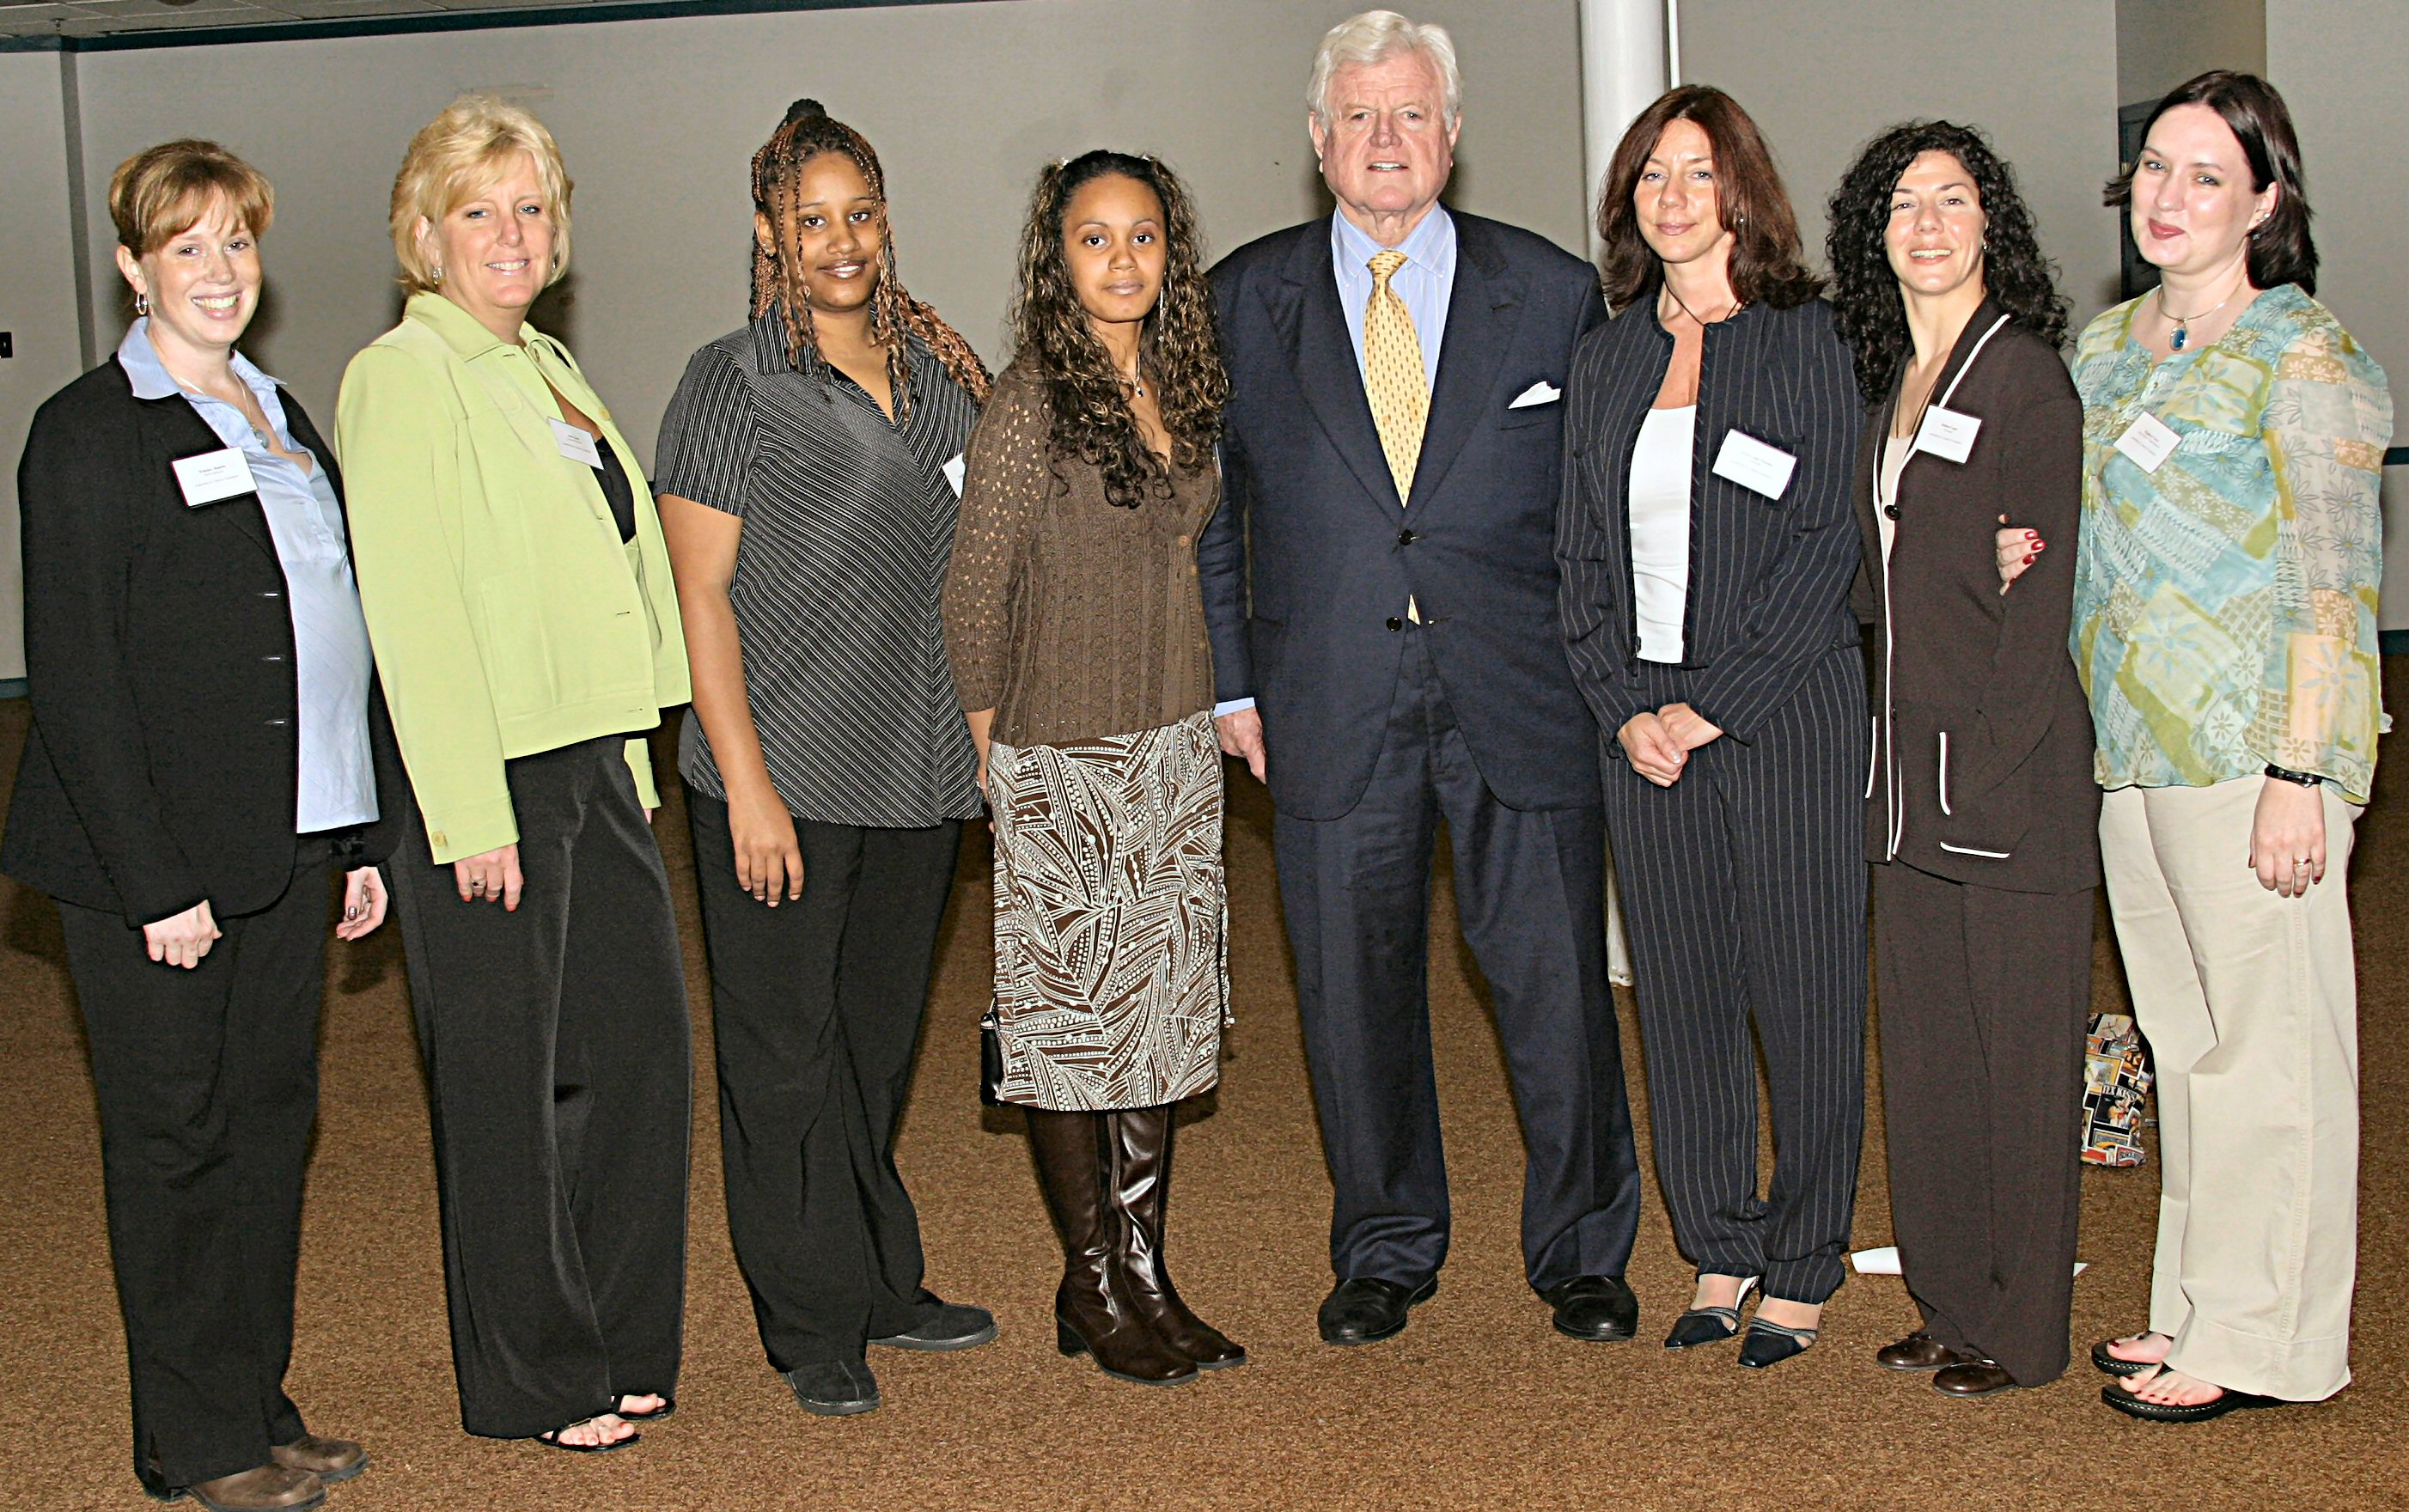 Senator Ted Kennedy celebrates with Susan and her team at the Inspirational Ones - Project Strive graduation ceremony.